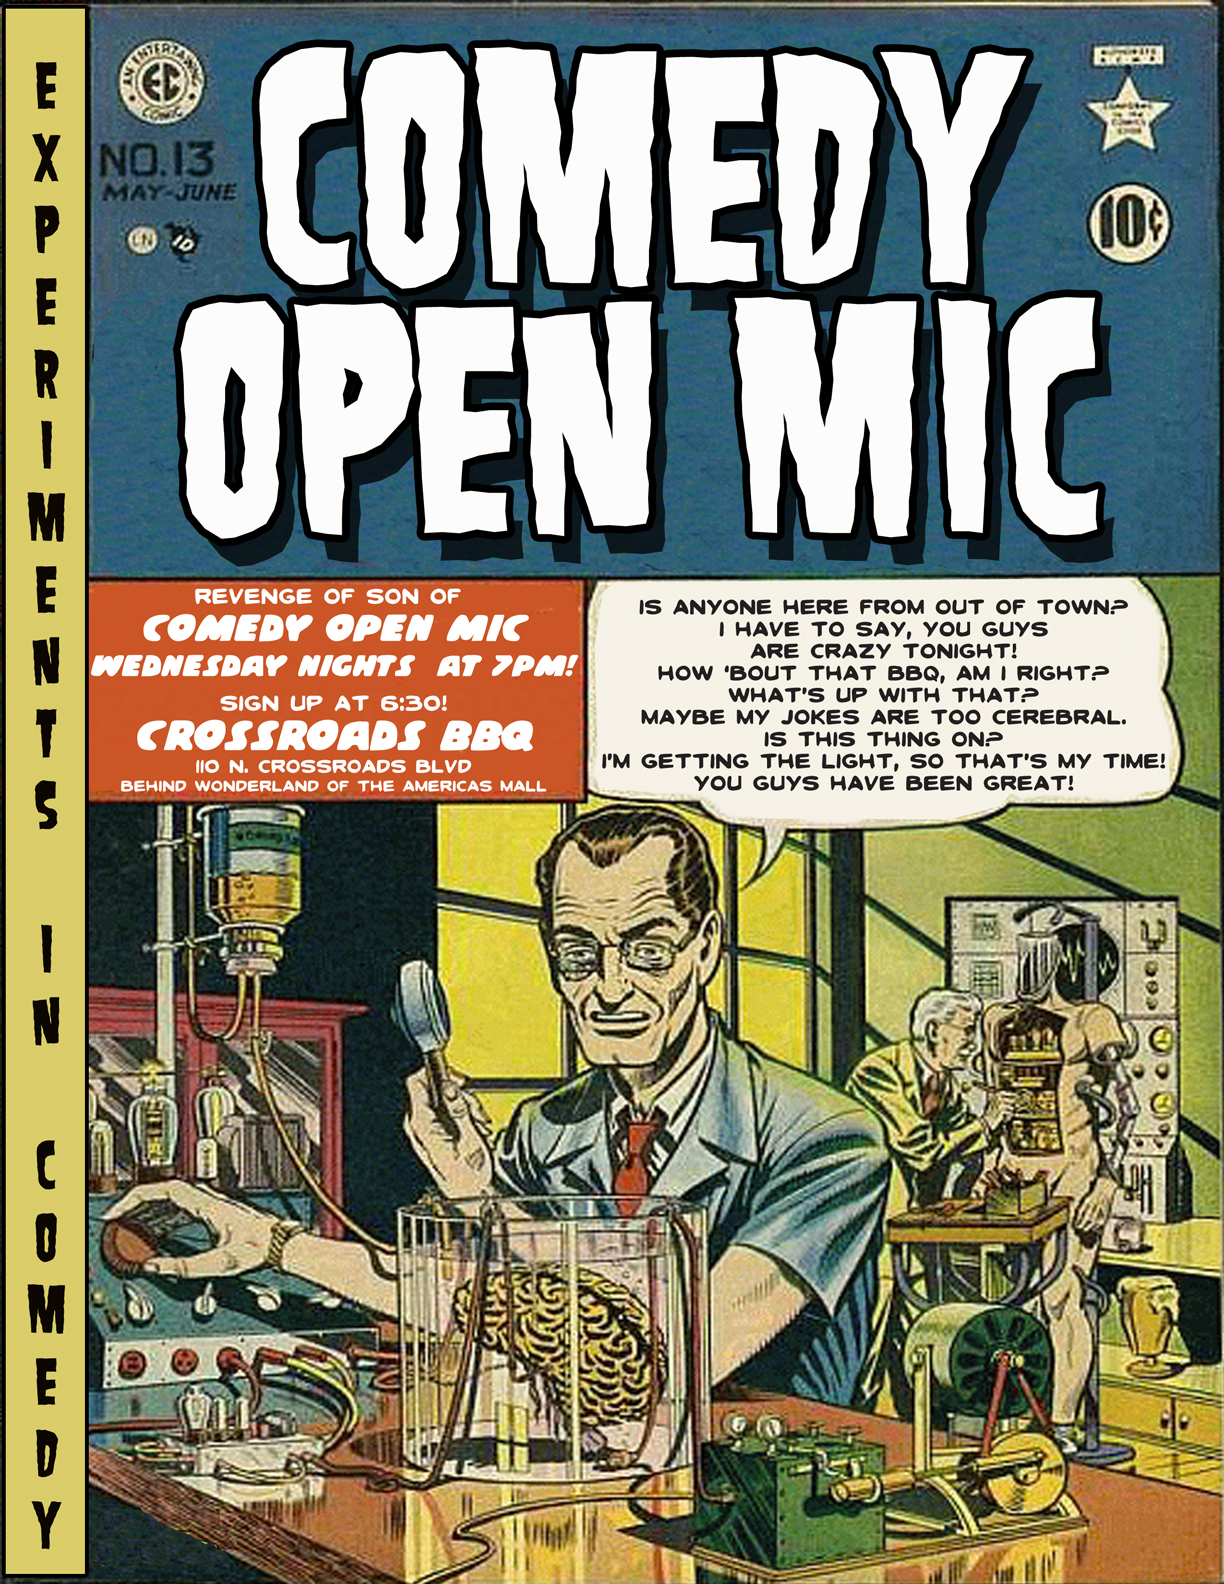 Flyer Number One for the Crossroads BBQ Clean Comedy Open Mic Night